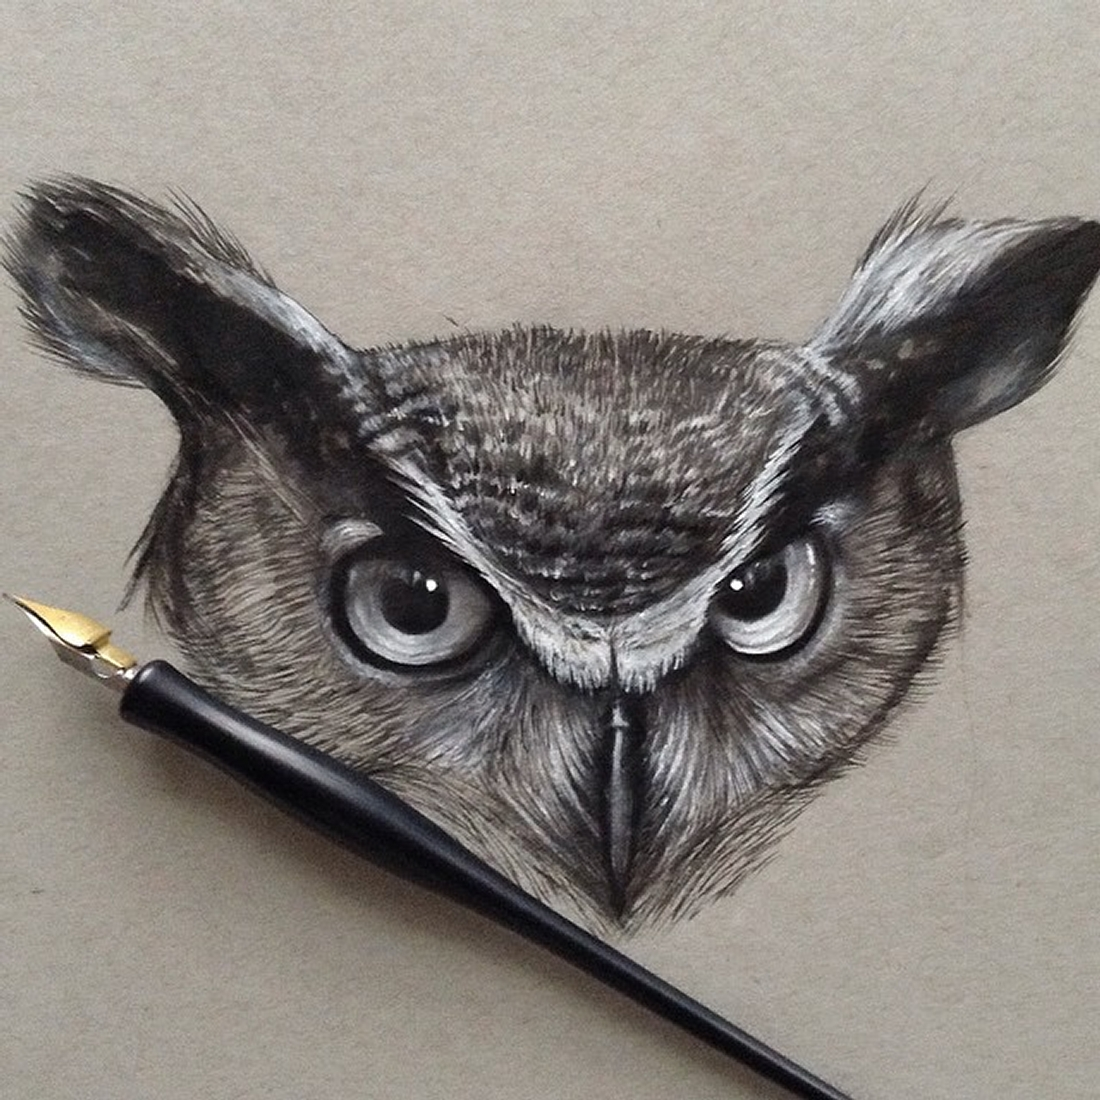 02-Horned-Owl-Jonathan-Martinez-Realistic-Pencil-Animal-Drawings-www-designstack-co